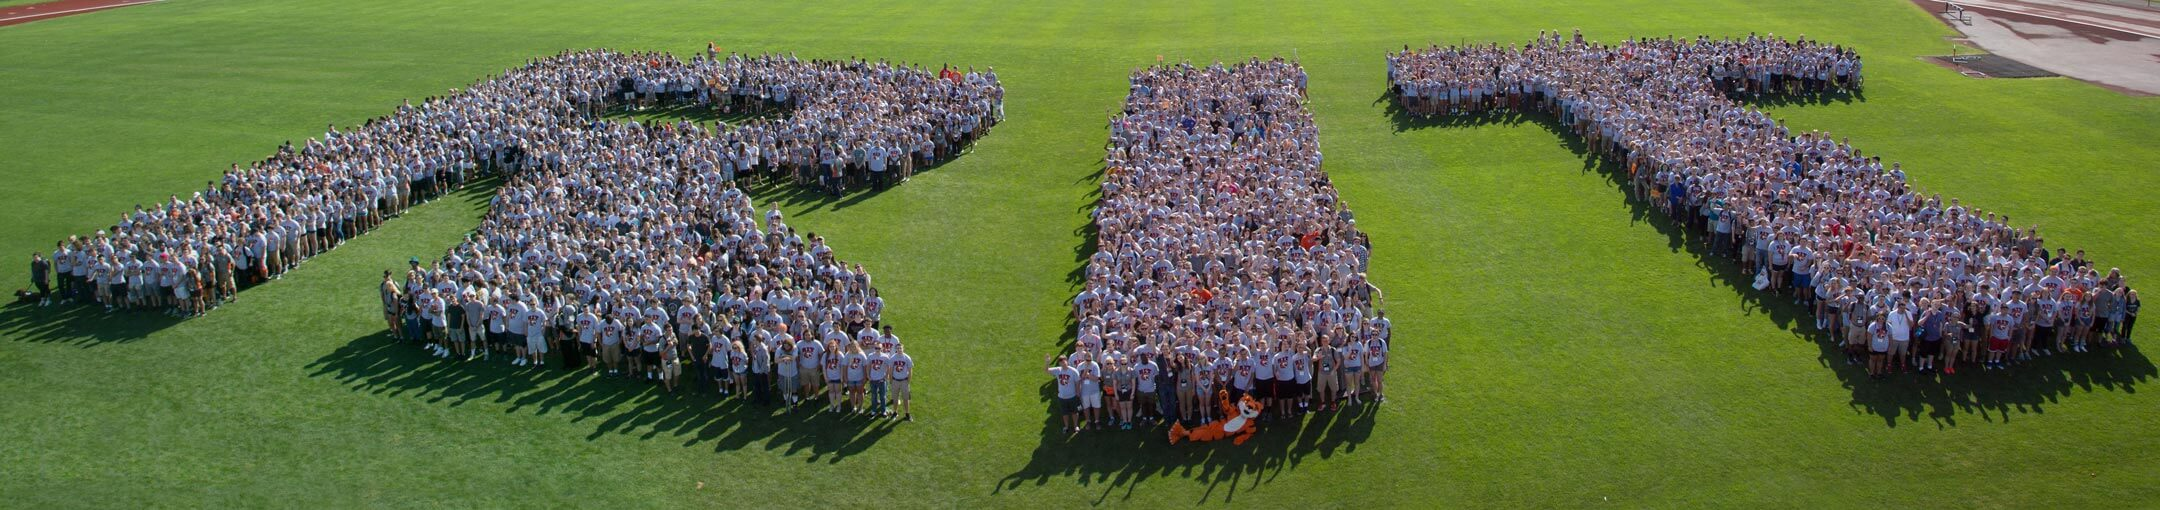 R I T freshman class of 2017 posing for a photo in the shape of letters R, I, and T